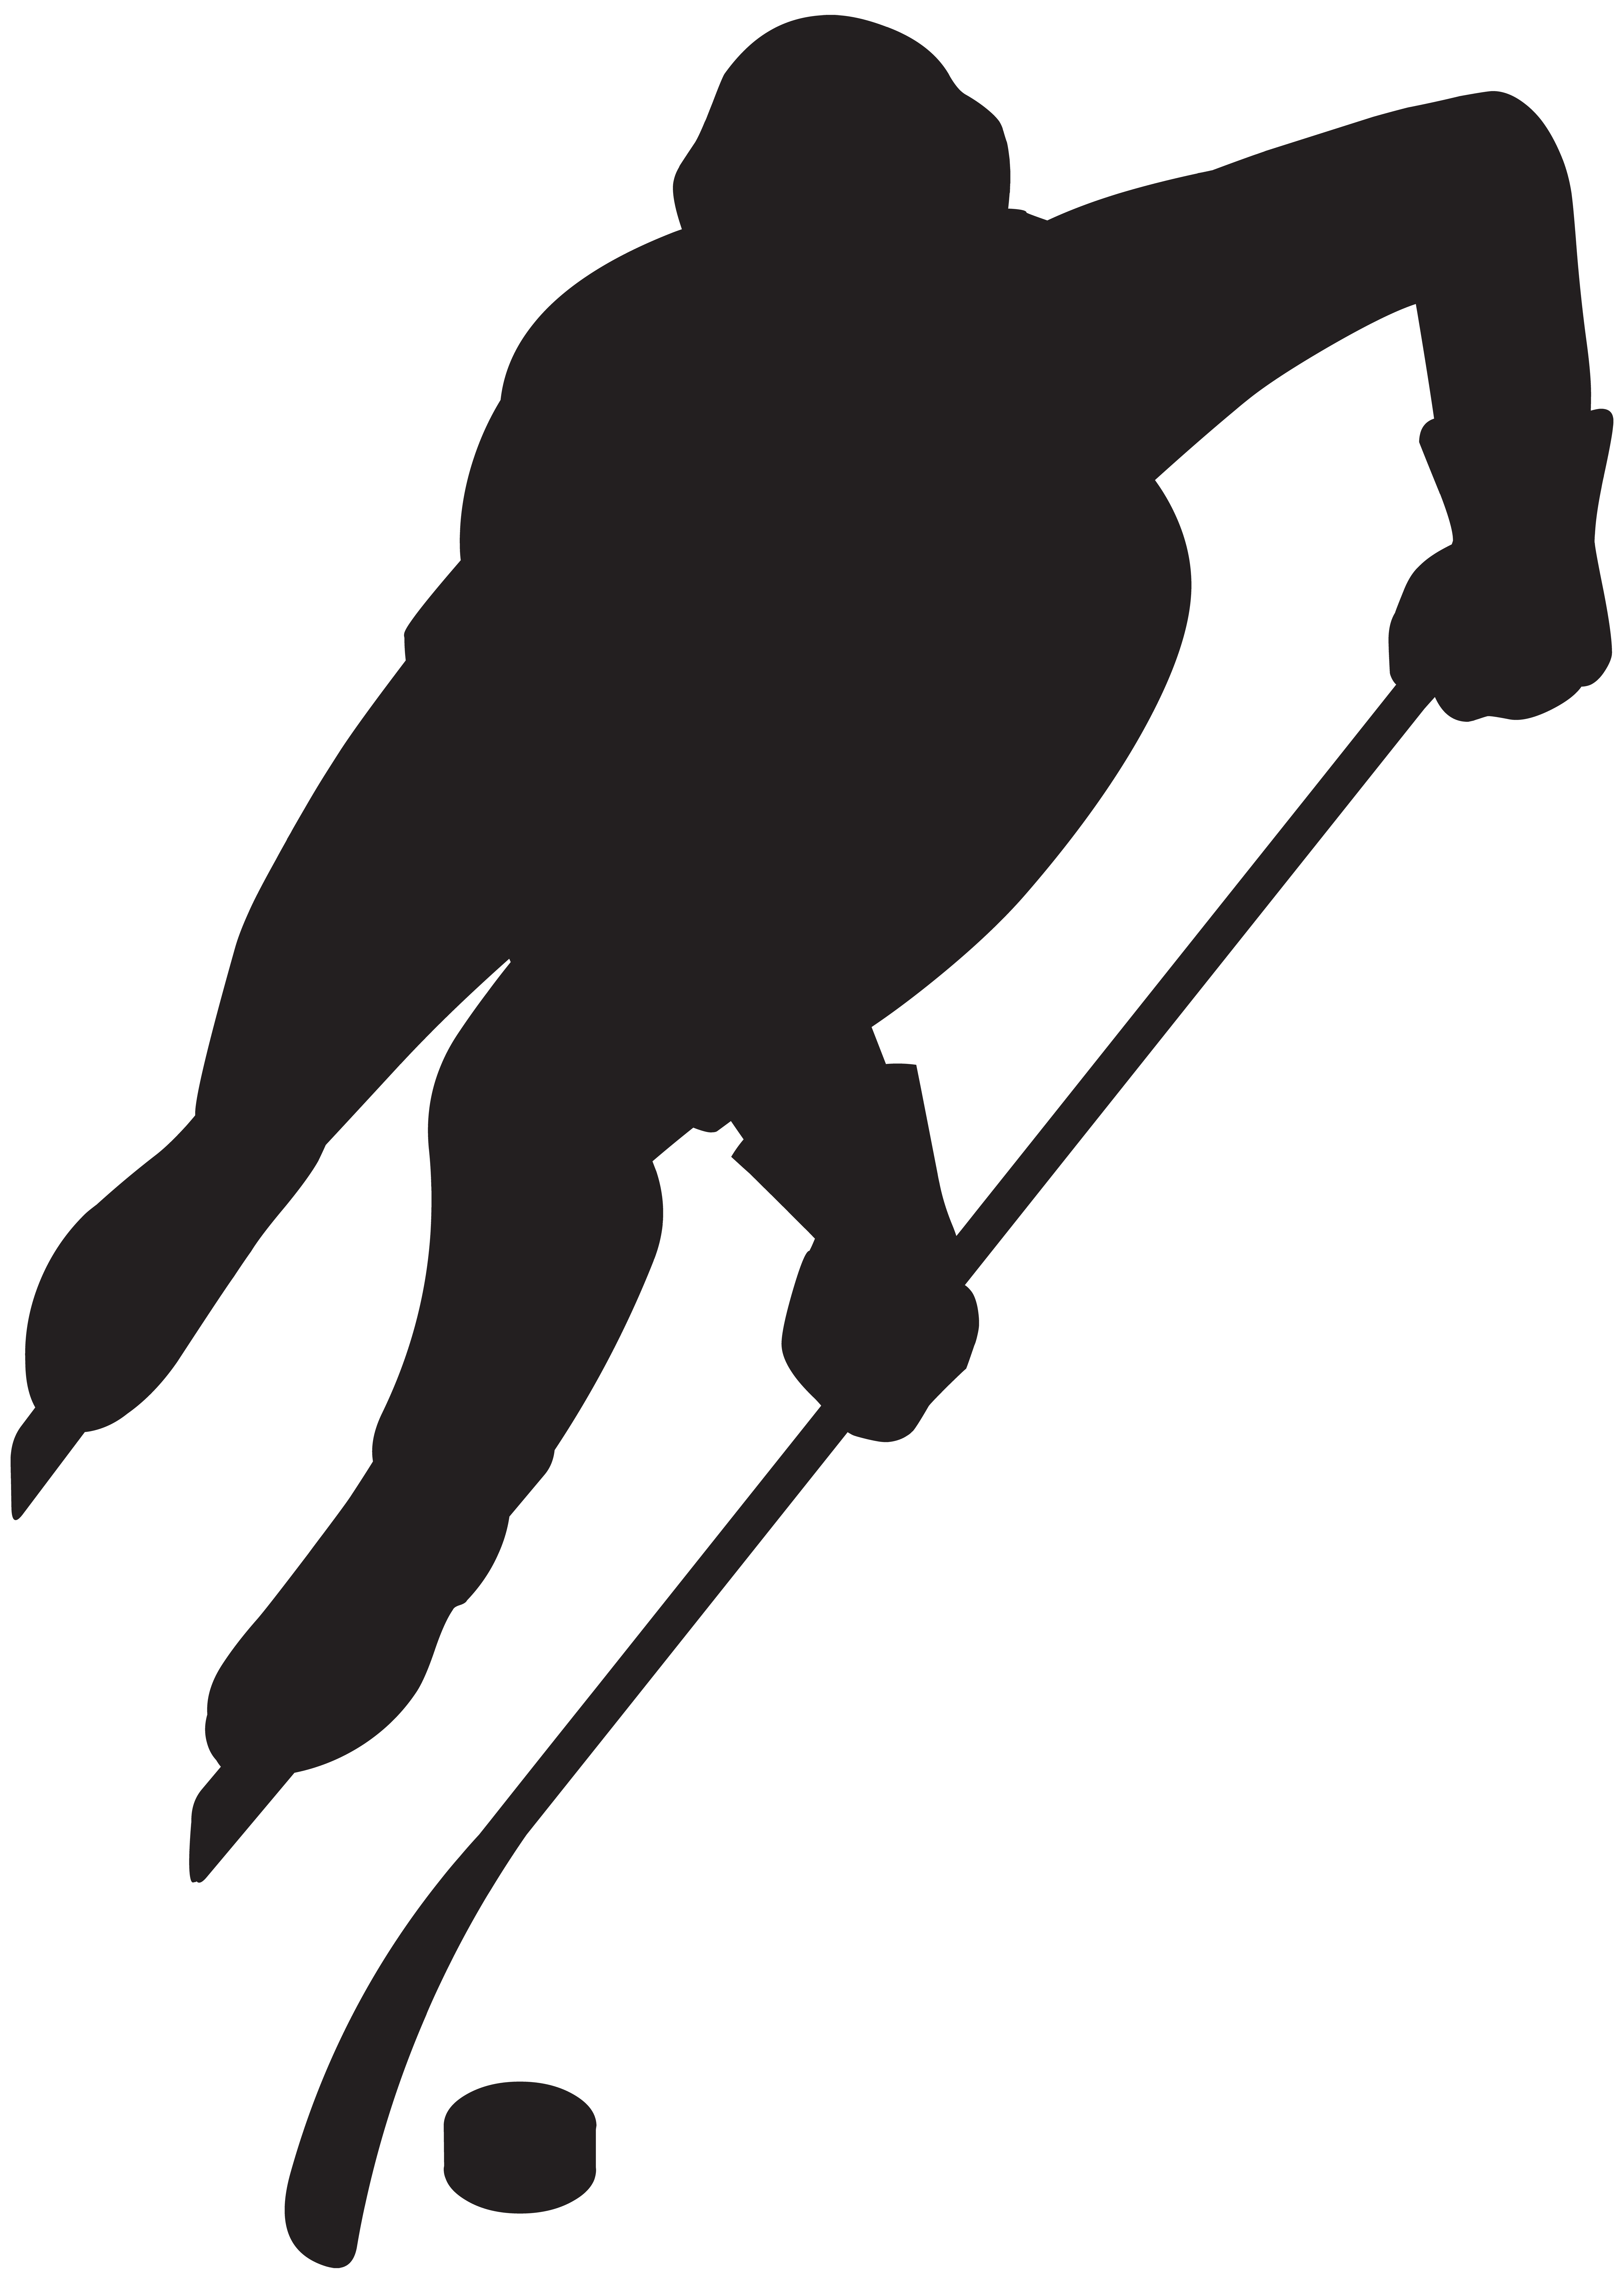 5691x8000 Hockey Player Silhouette Png Clip Art Imageu200b Gallery